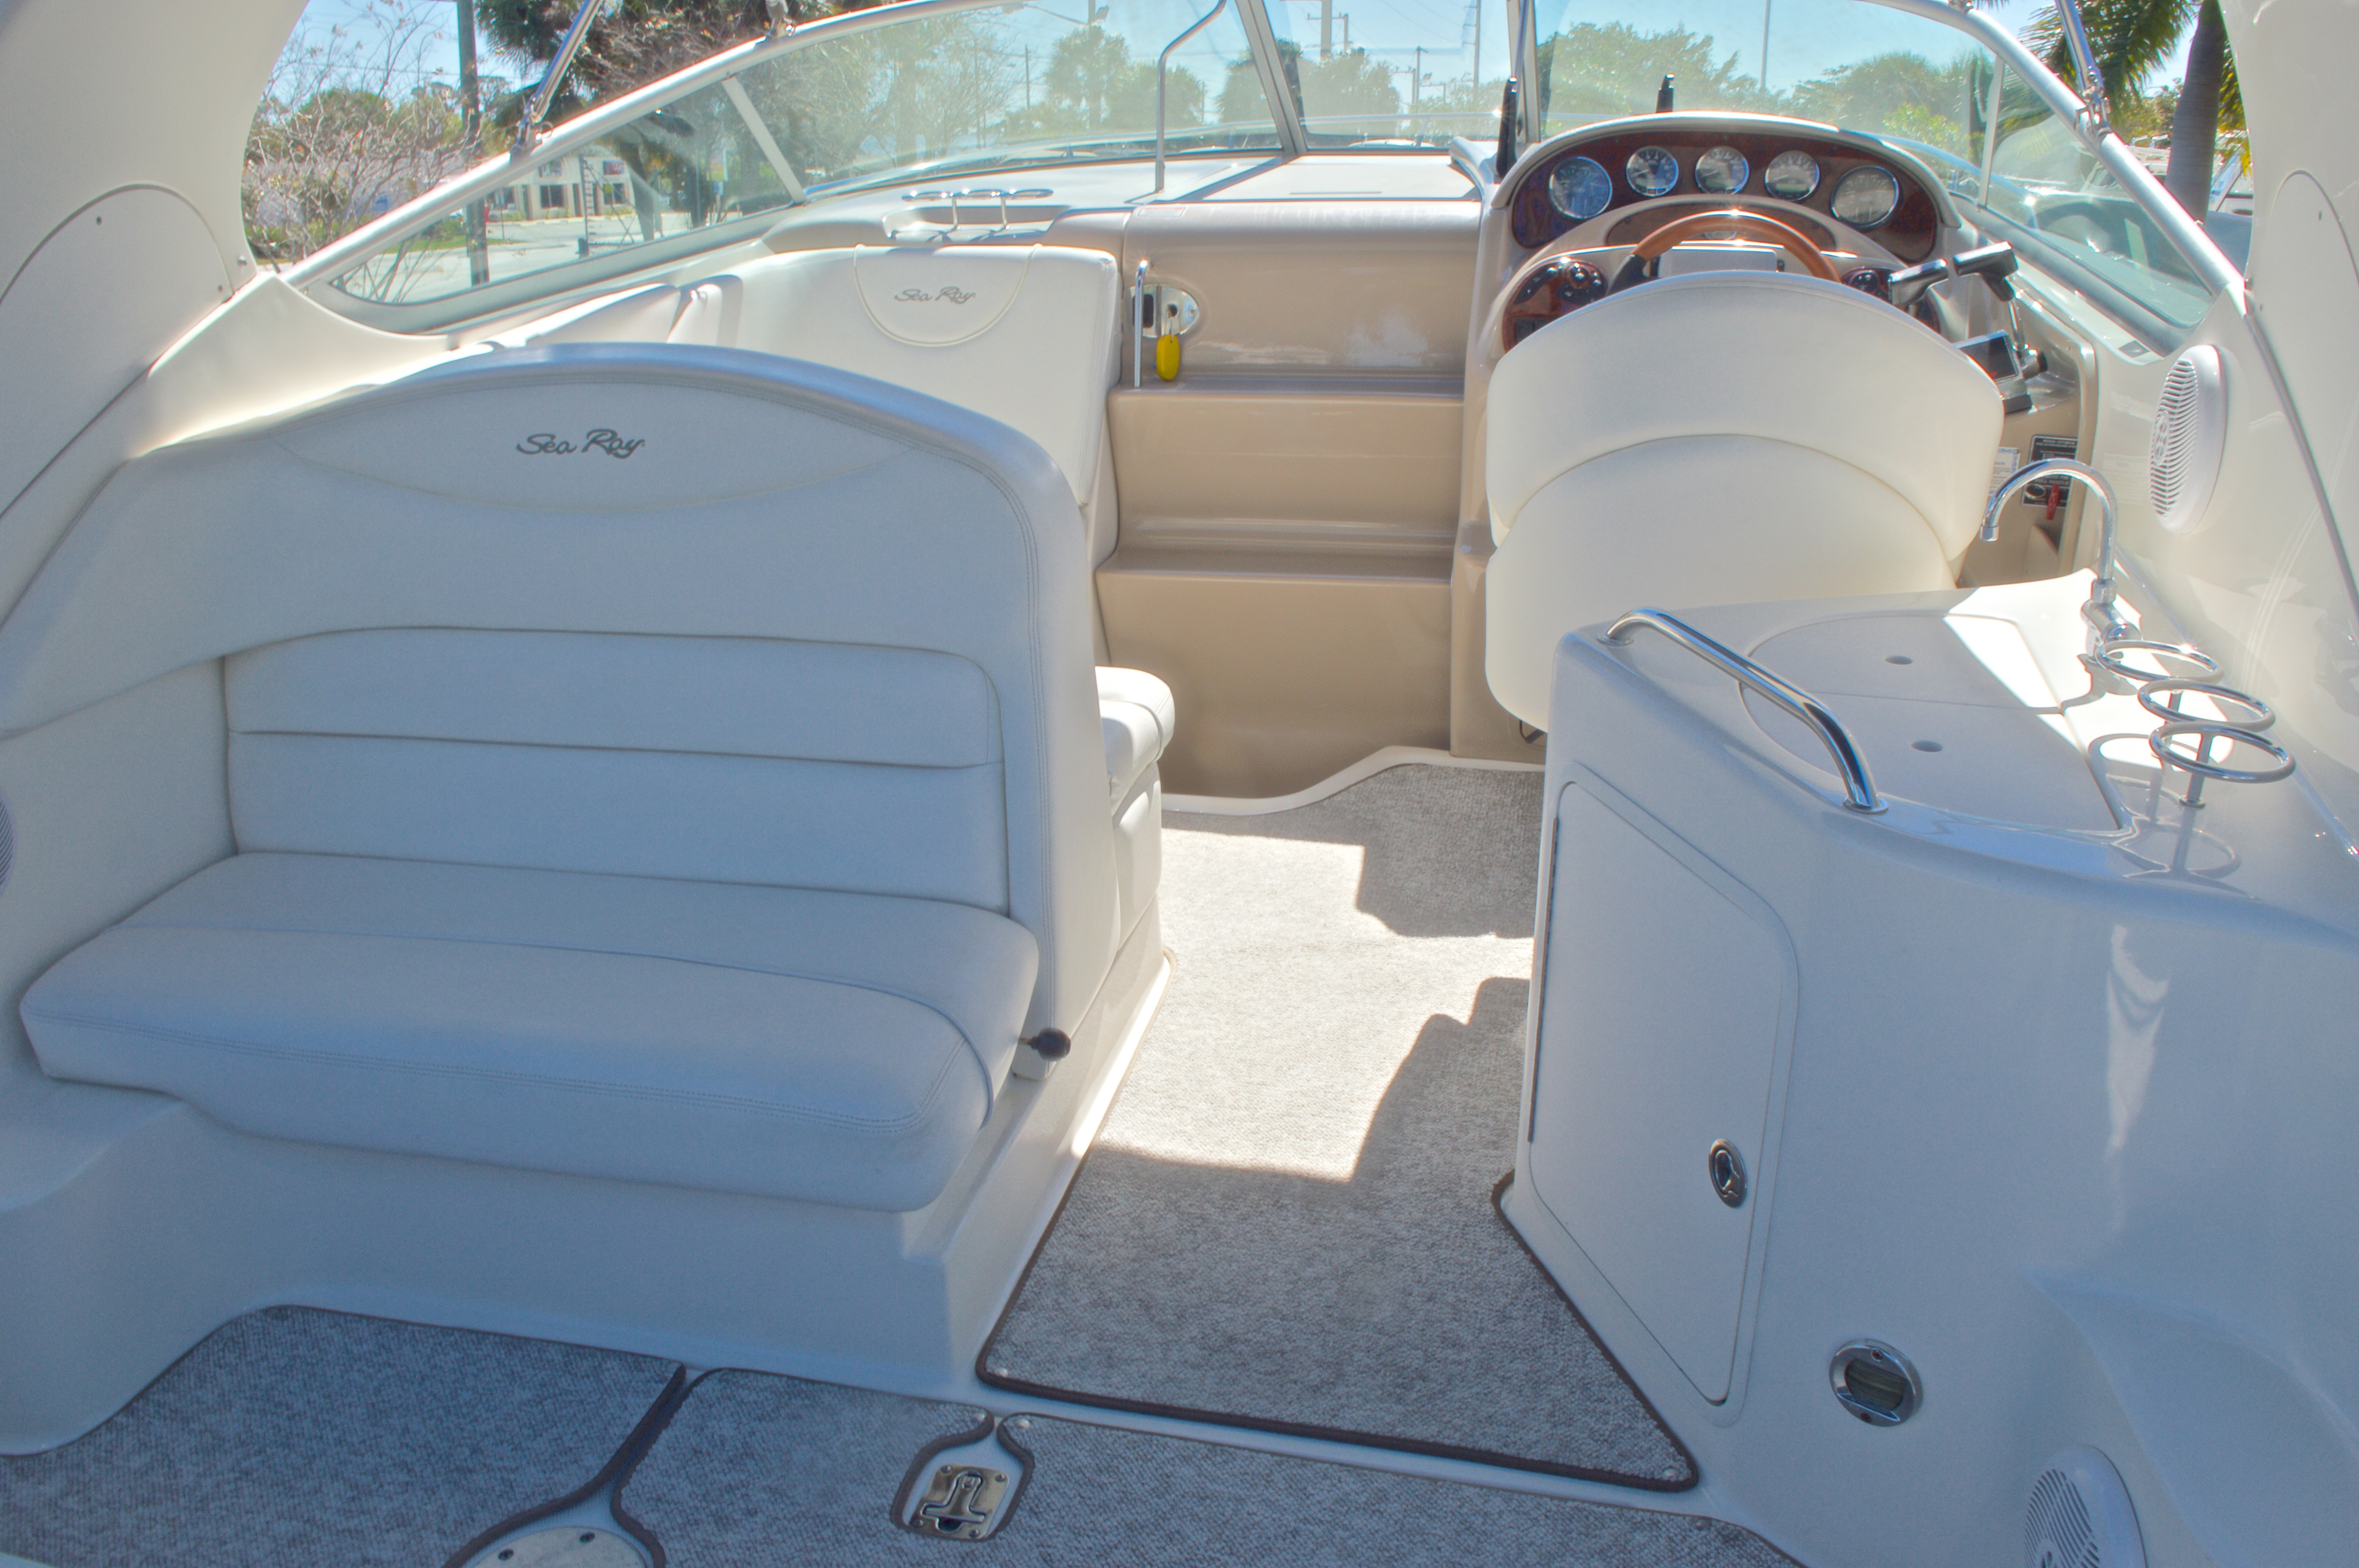 Thumbnail 15 for Used 2005 Sea Ray 280 Sundancer boat for sale in West Palm Beach, FL